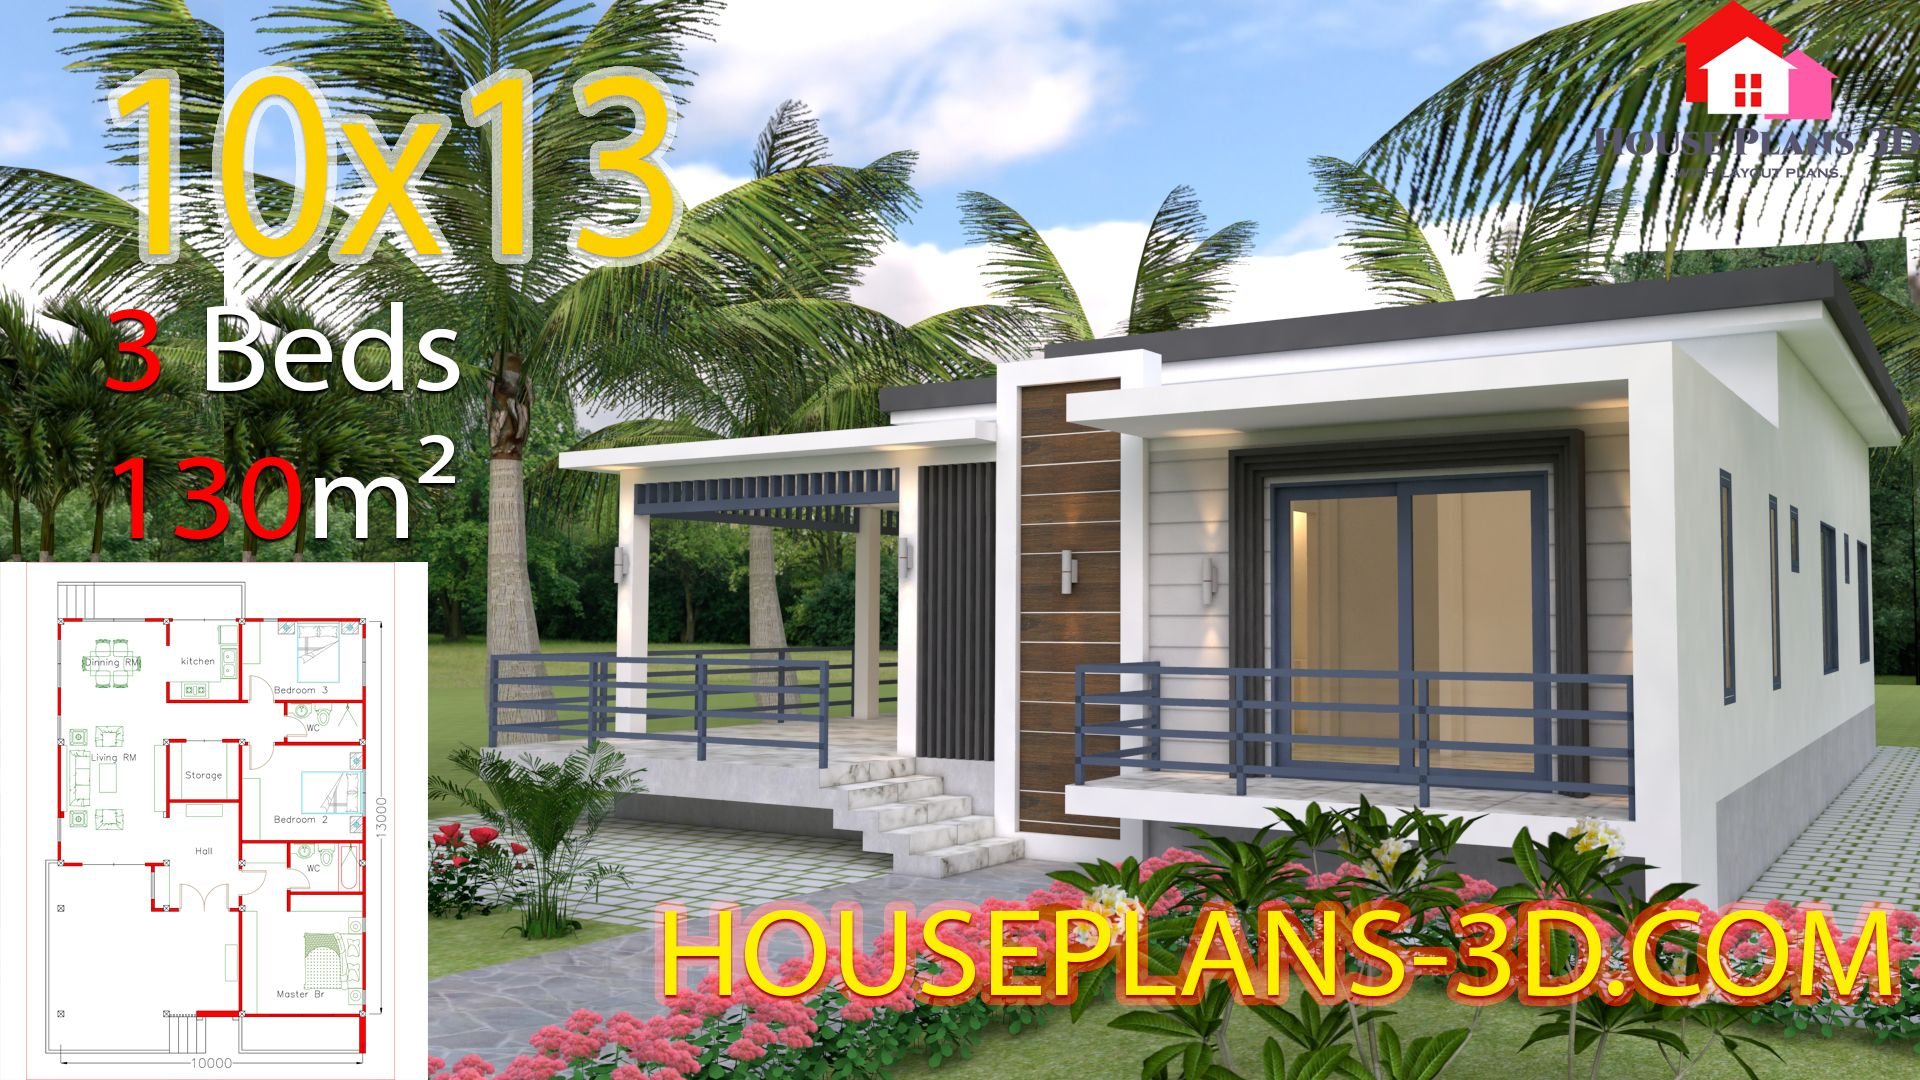 House Design 10x13 With 3 Bedrooms Terrace Roofthe House Has Car Parking And Garden Living Room Dining Room K Small House Design Plans House Roof House Plans